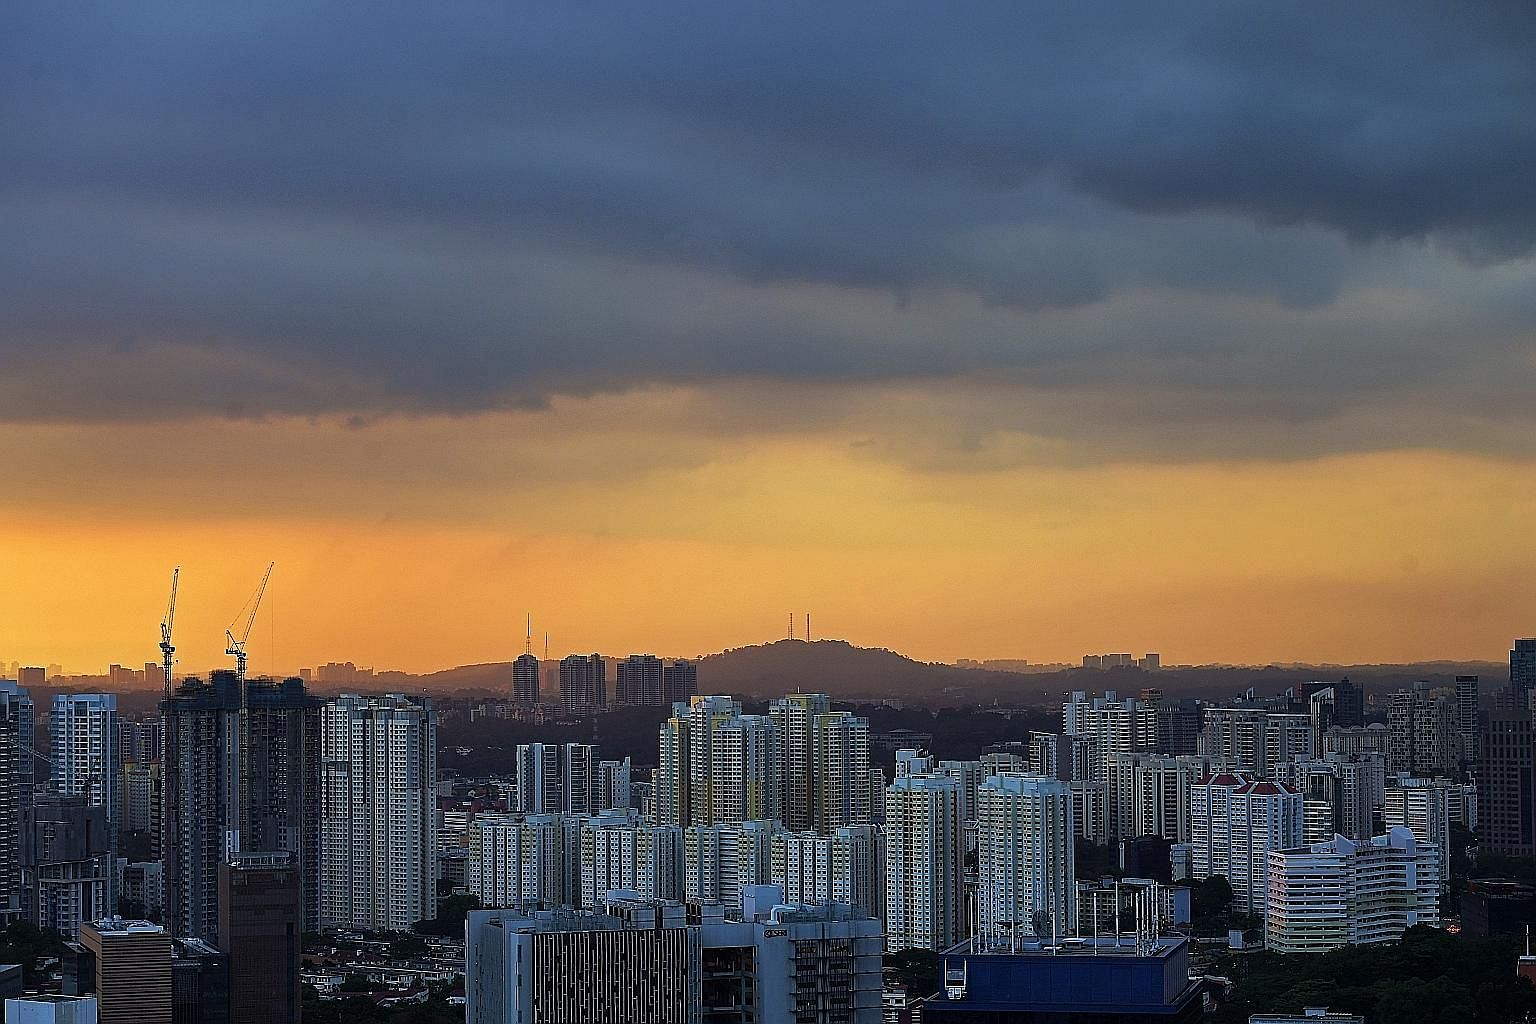 The public housing market largely mirrored the private, with a surge in transactions and easing rates of decline in prices. There were 6,001 HDB resale transactions in the second quarter, the highest since the second quarter of 2013.